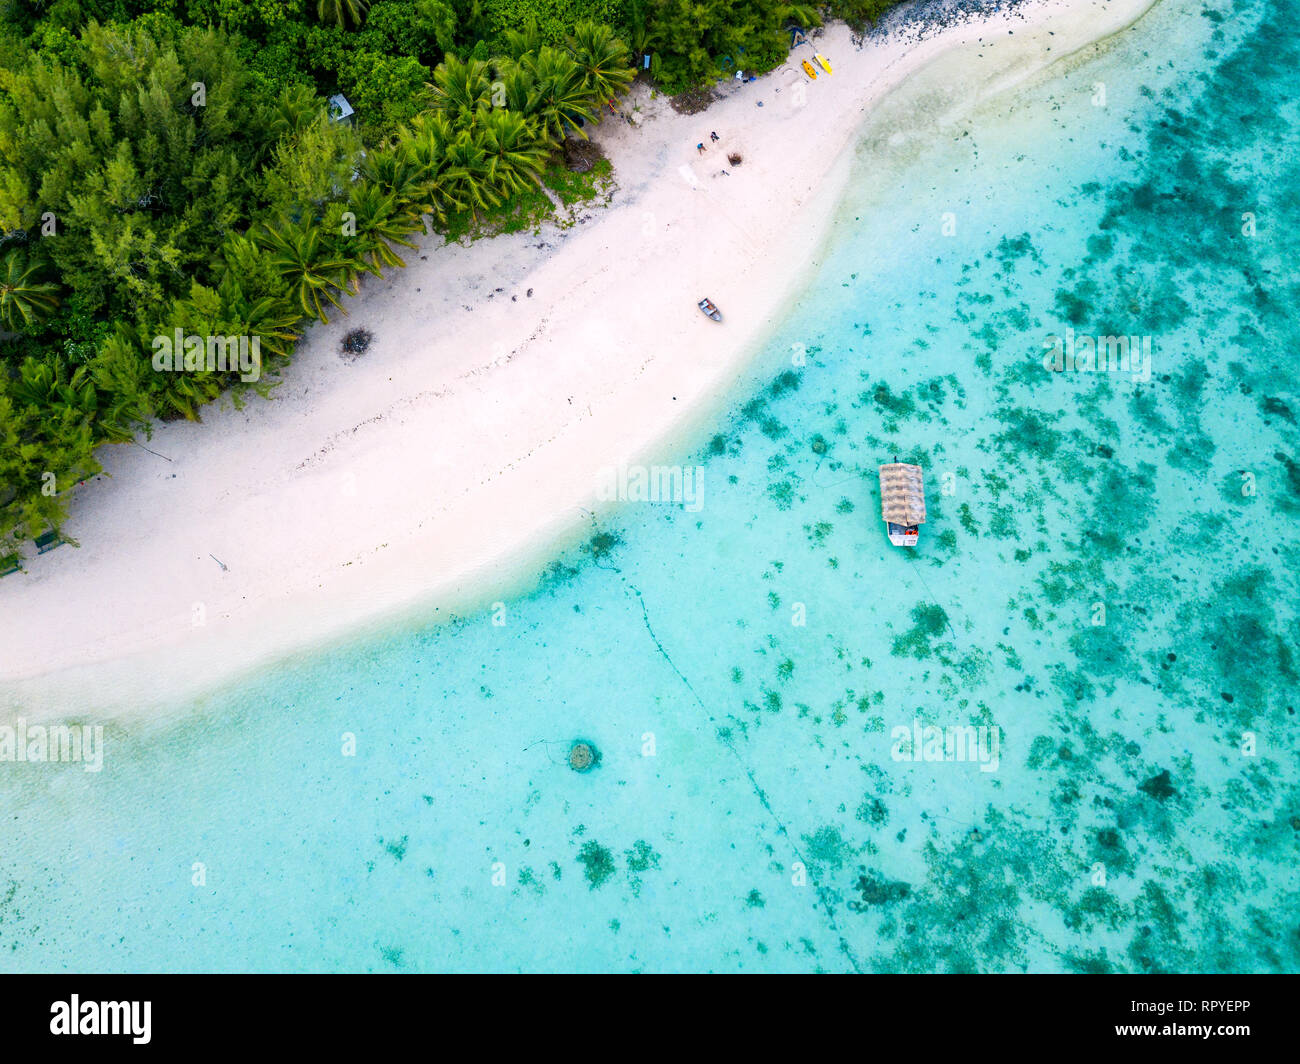 An aerial view of Muri Lagoon on Rarotonga in the Cook Islands - Stock Image